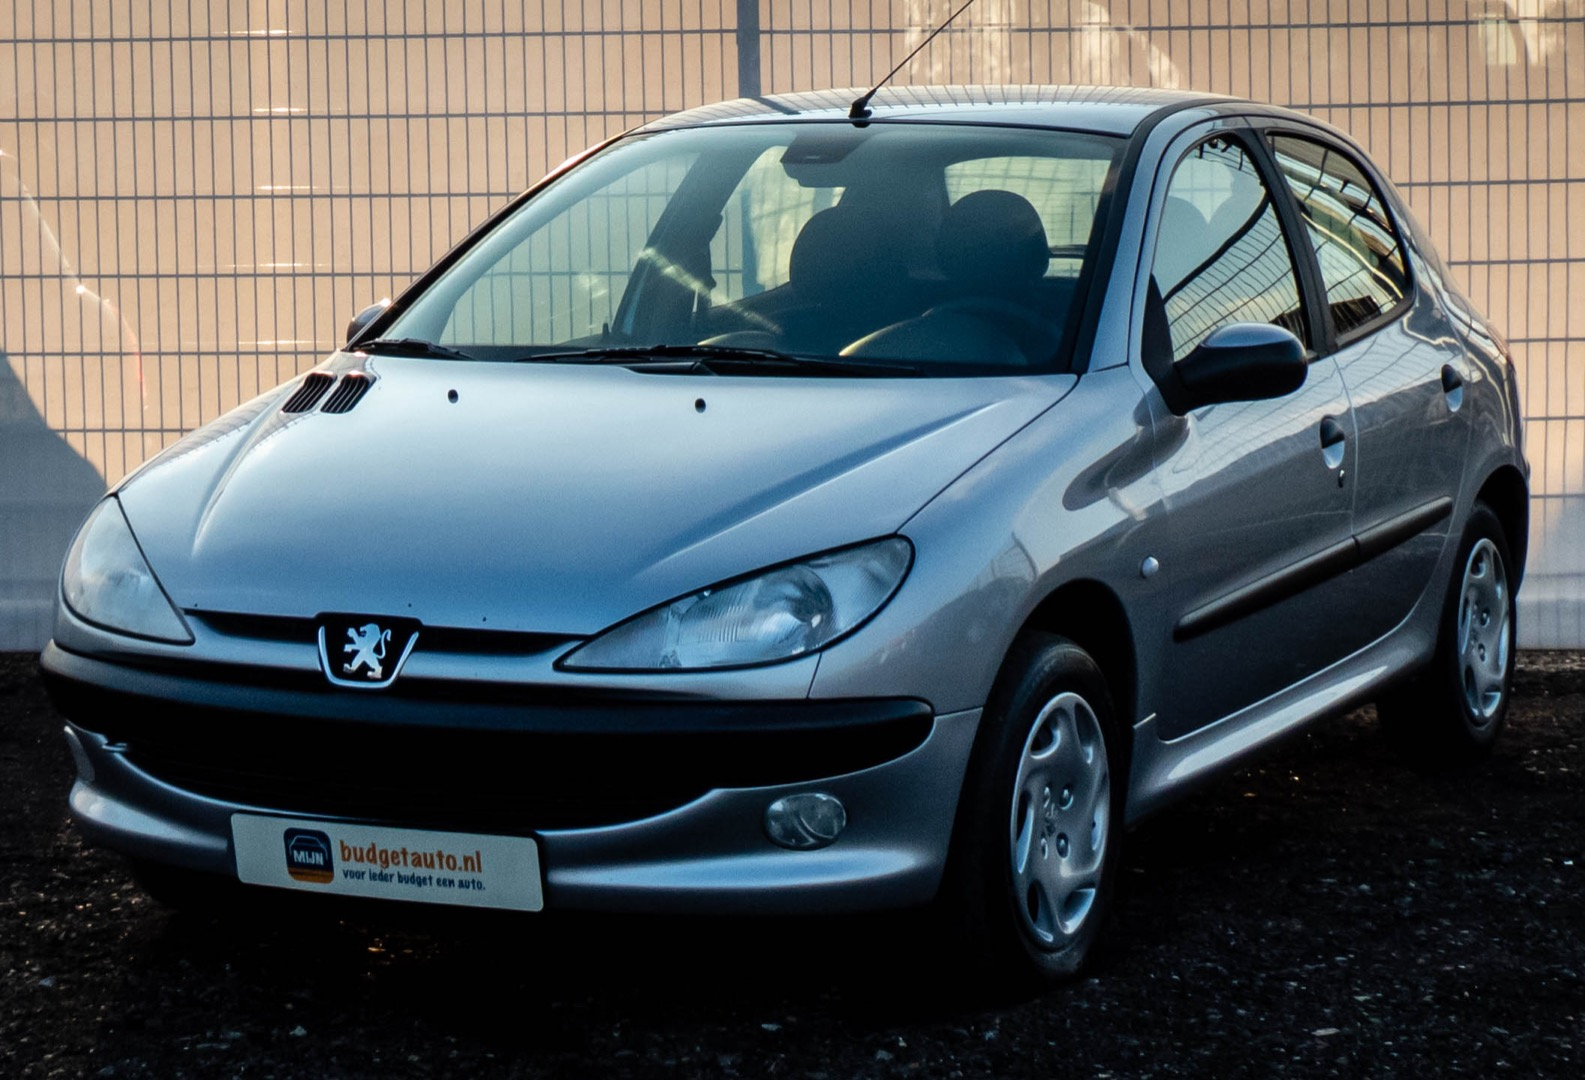 Peugeot 206 1.4 Gentry Automaat